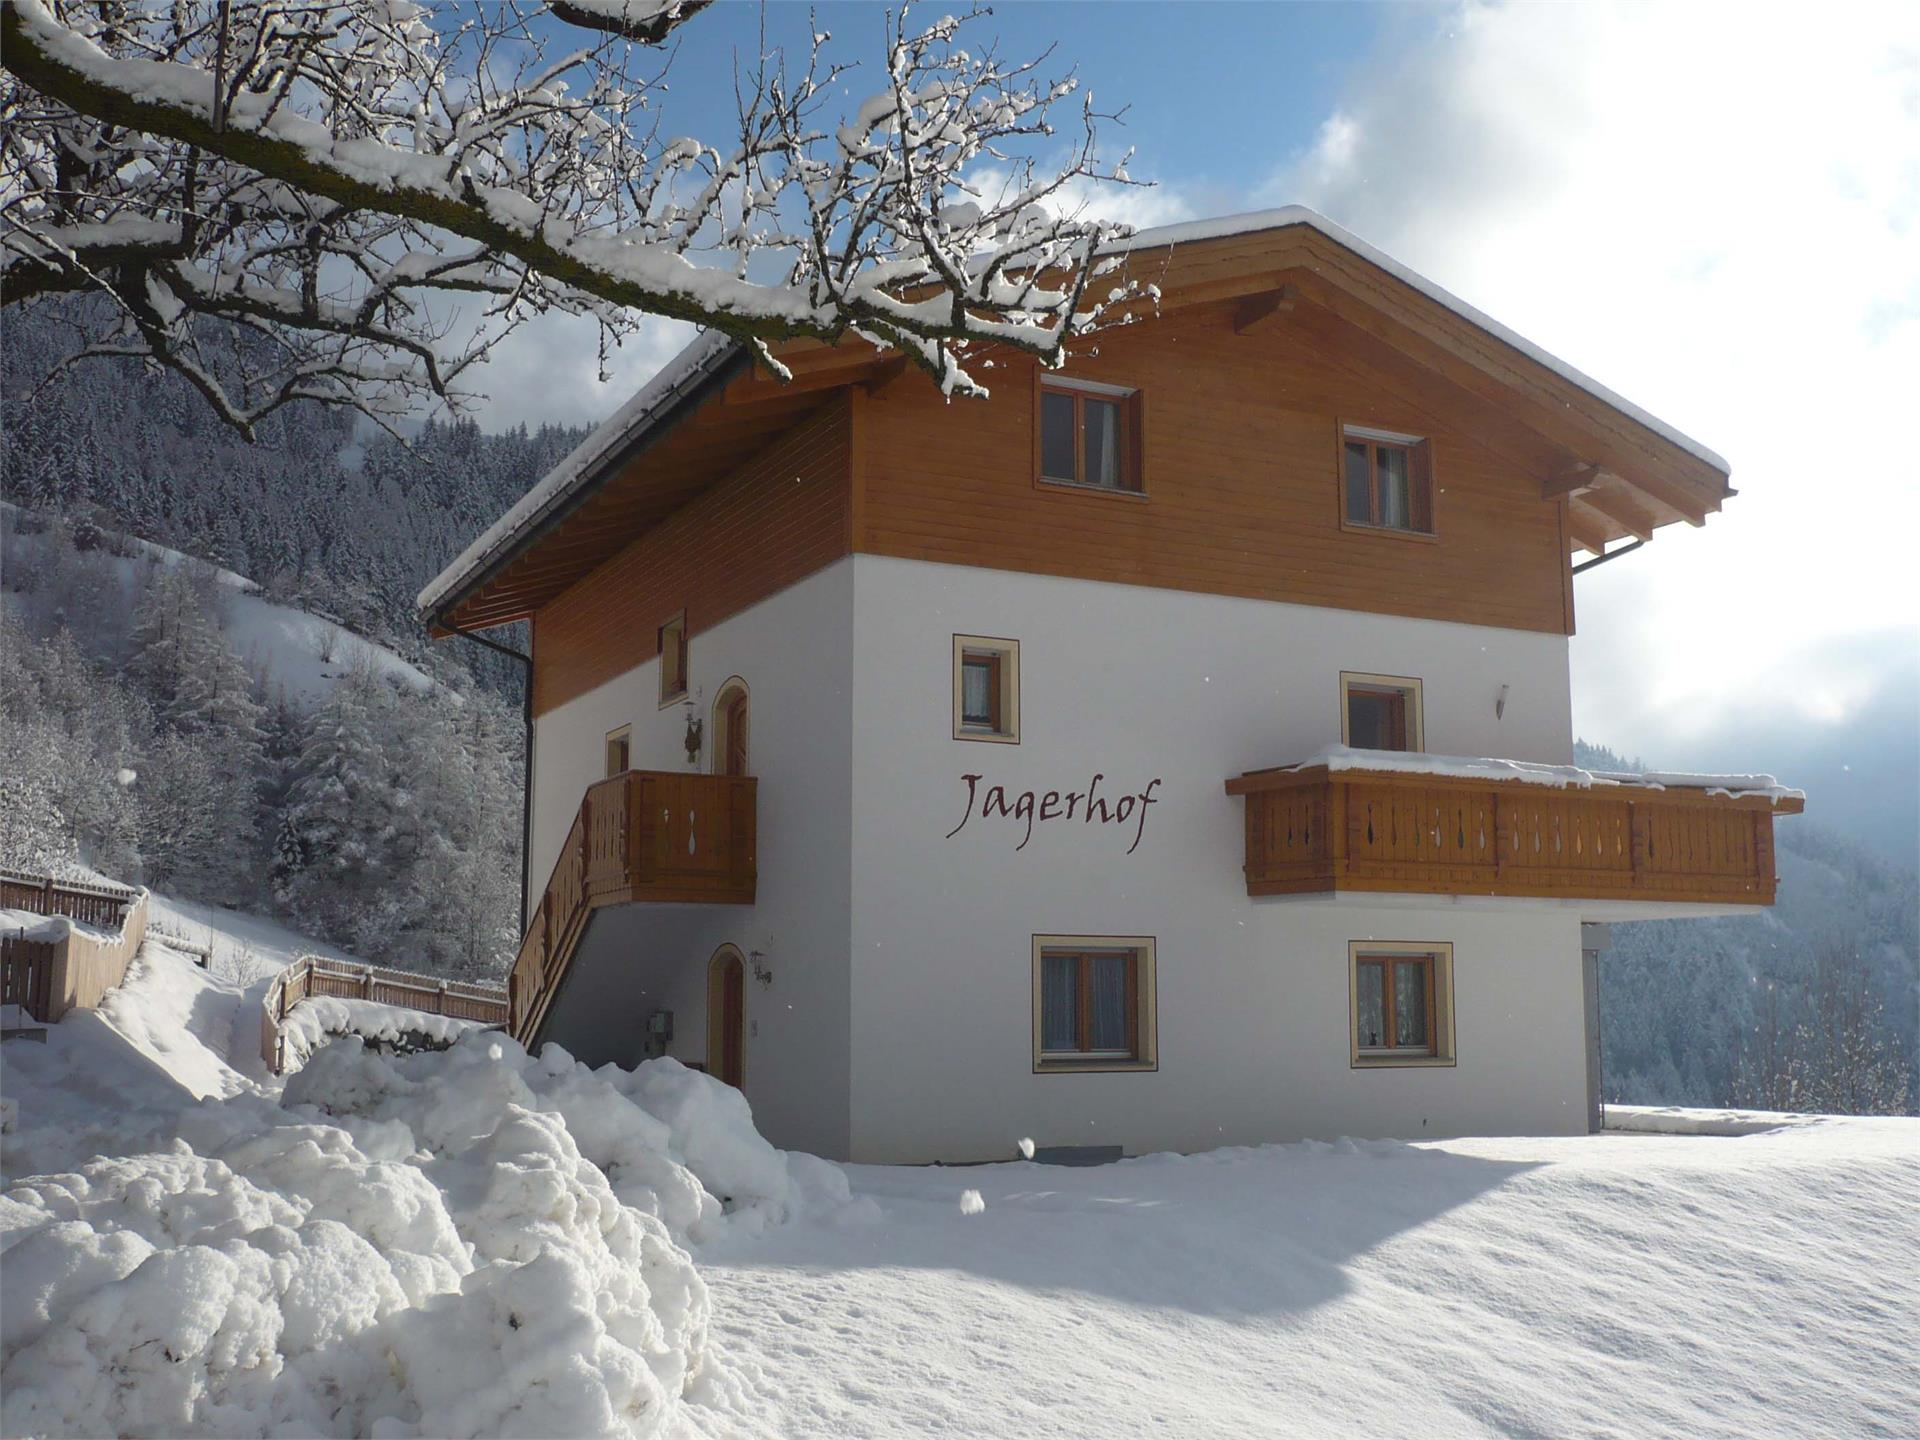 Jagerhof Winter